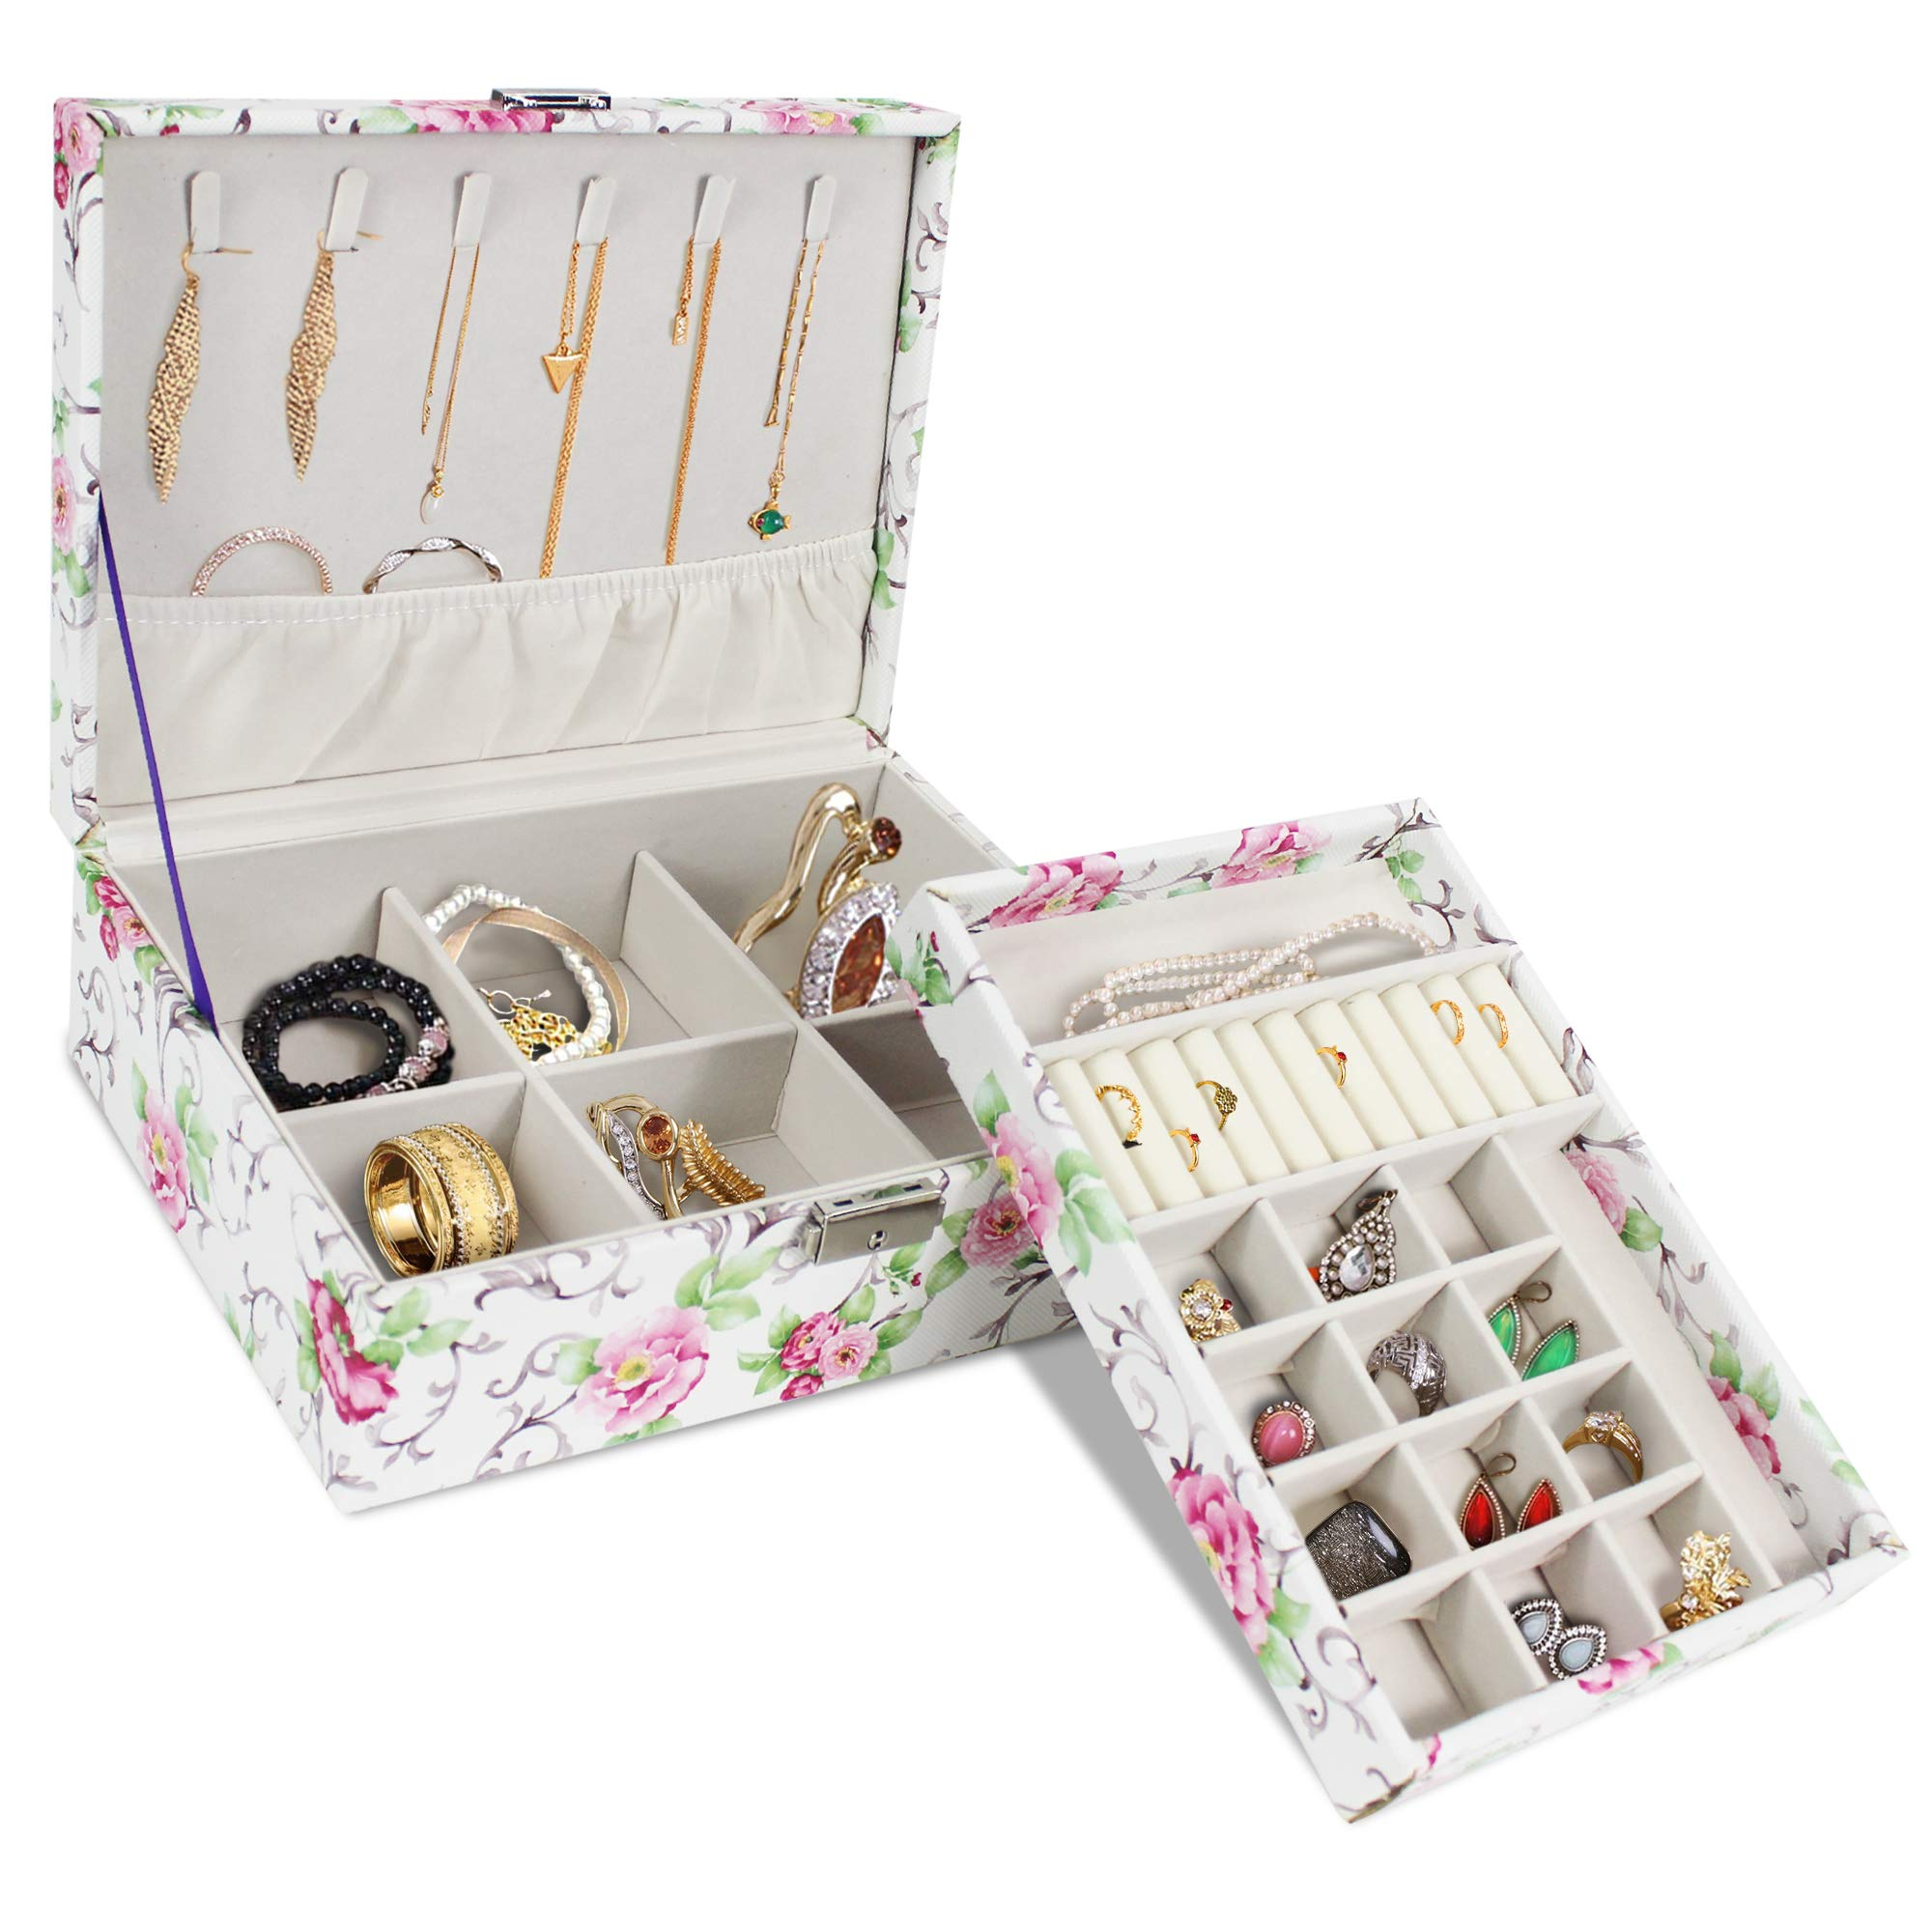 Double Layer Jewelry Box, Multi Compartments Jewelry Organizer ~ Necklaces, Bracelets, Earrings and Rings Holder Tray for Women (Floral)